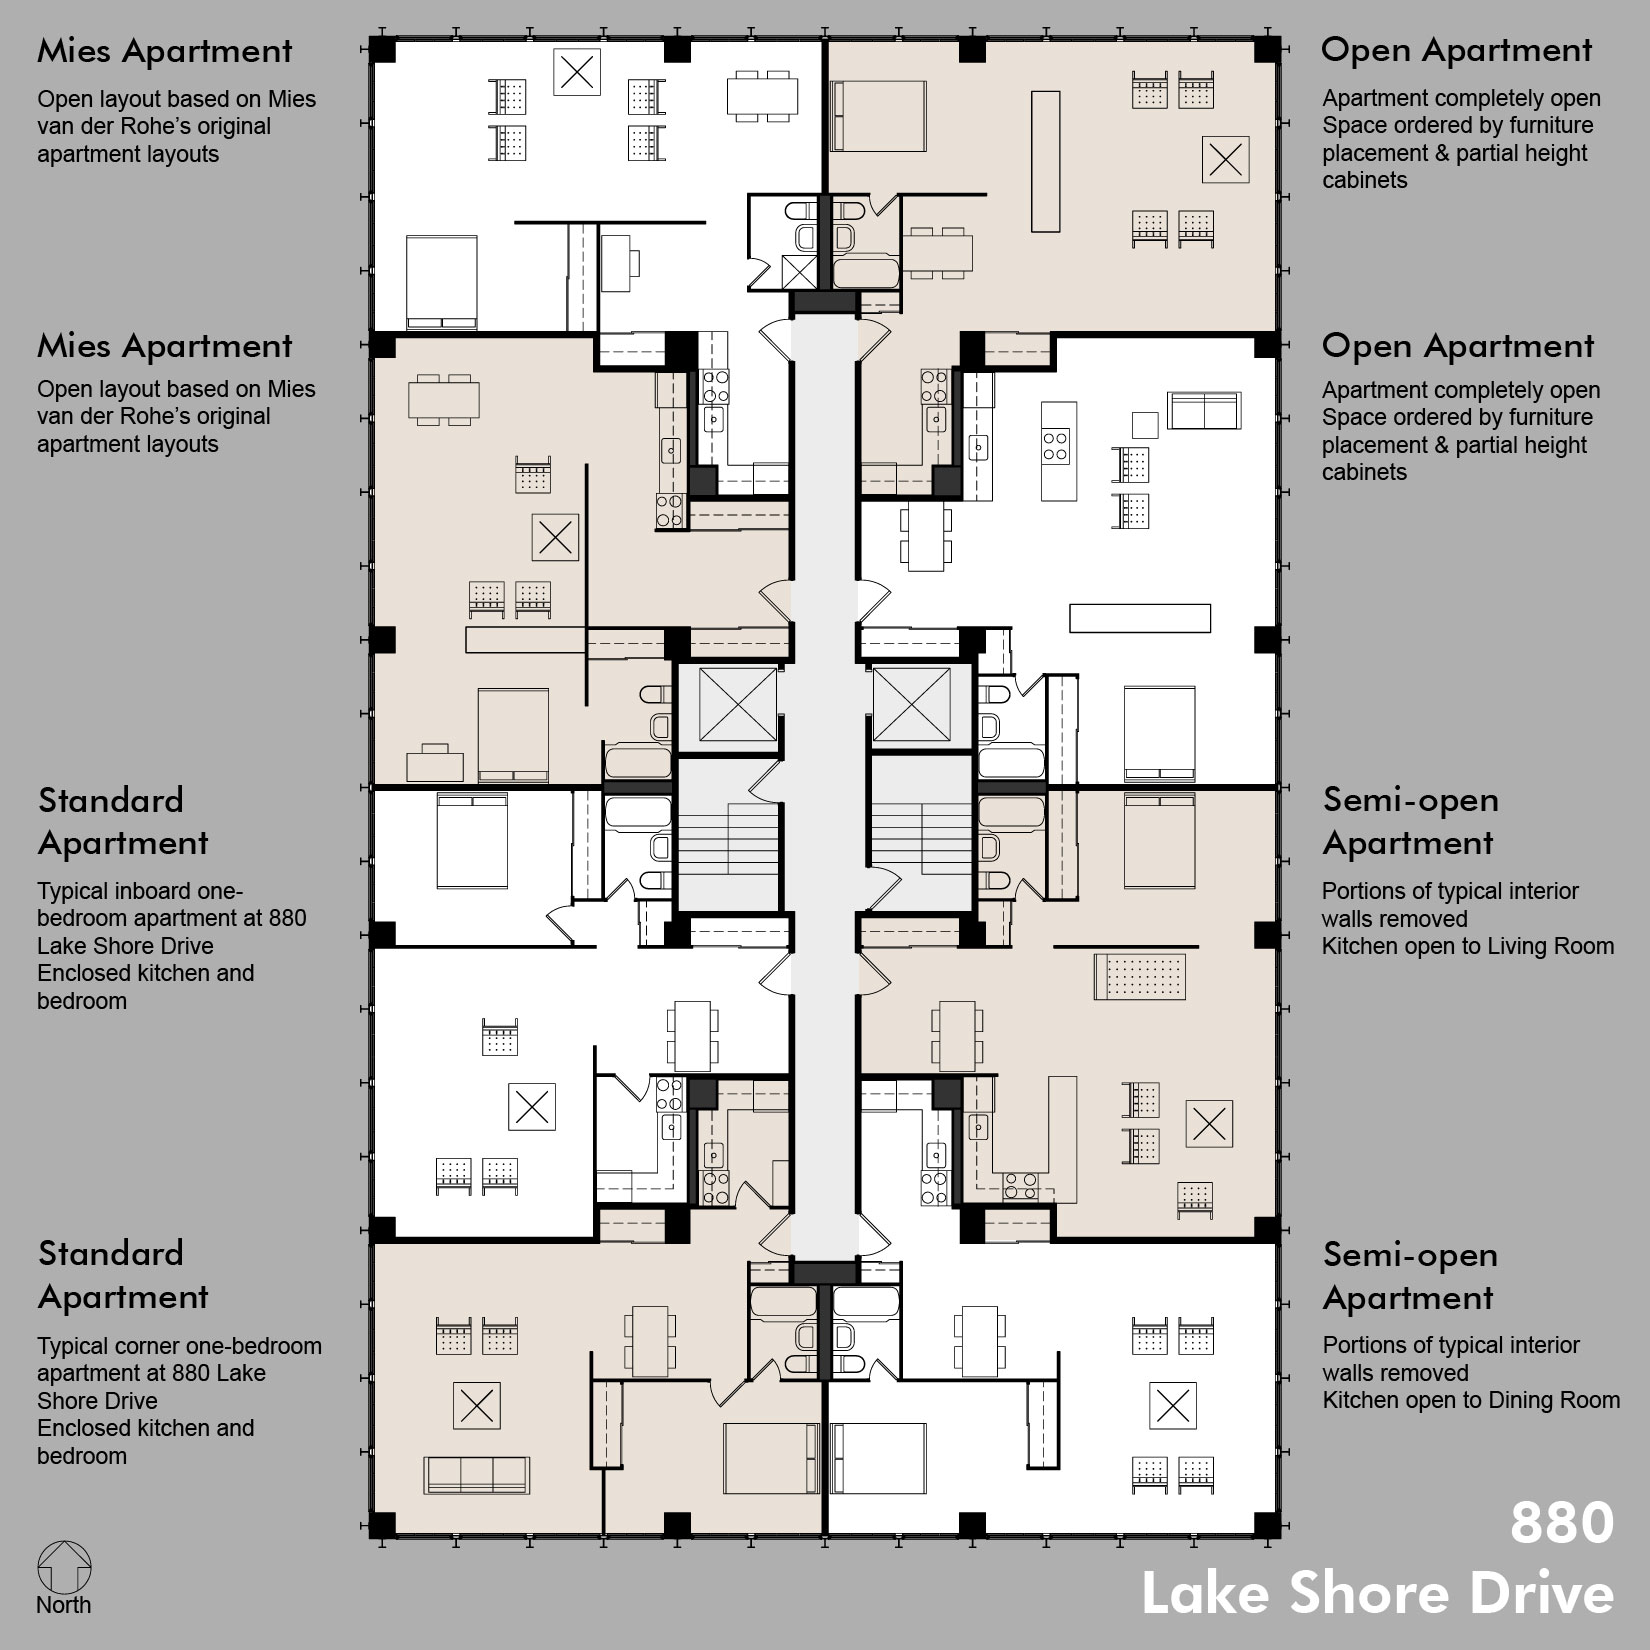 880floorplansincludingstandardaptg combining apartments malvernweather